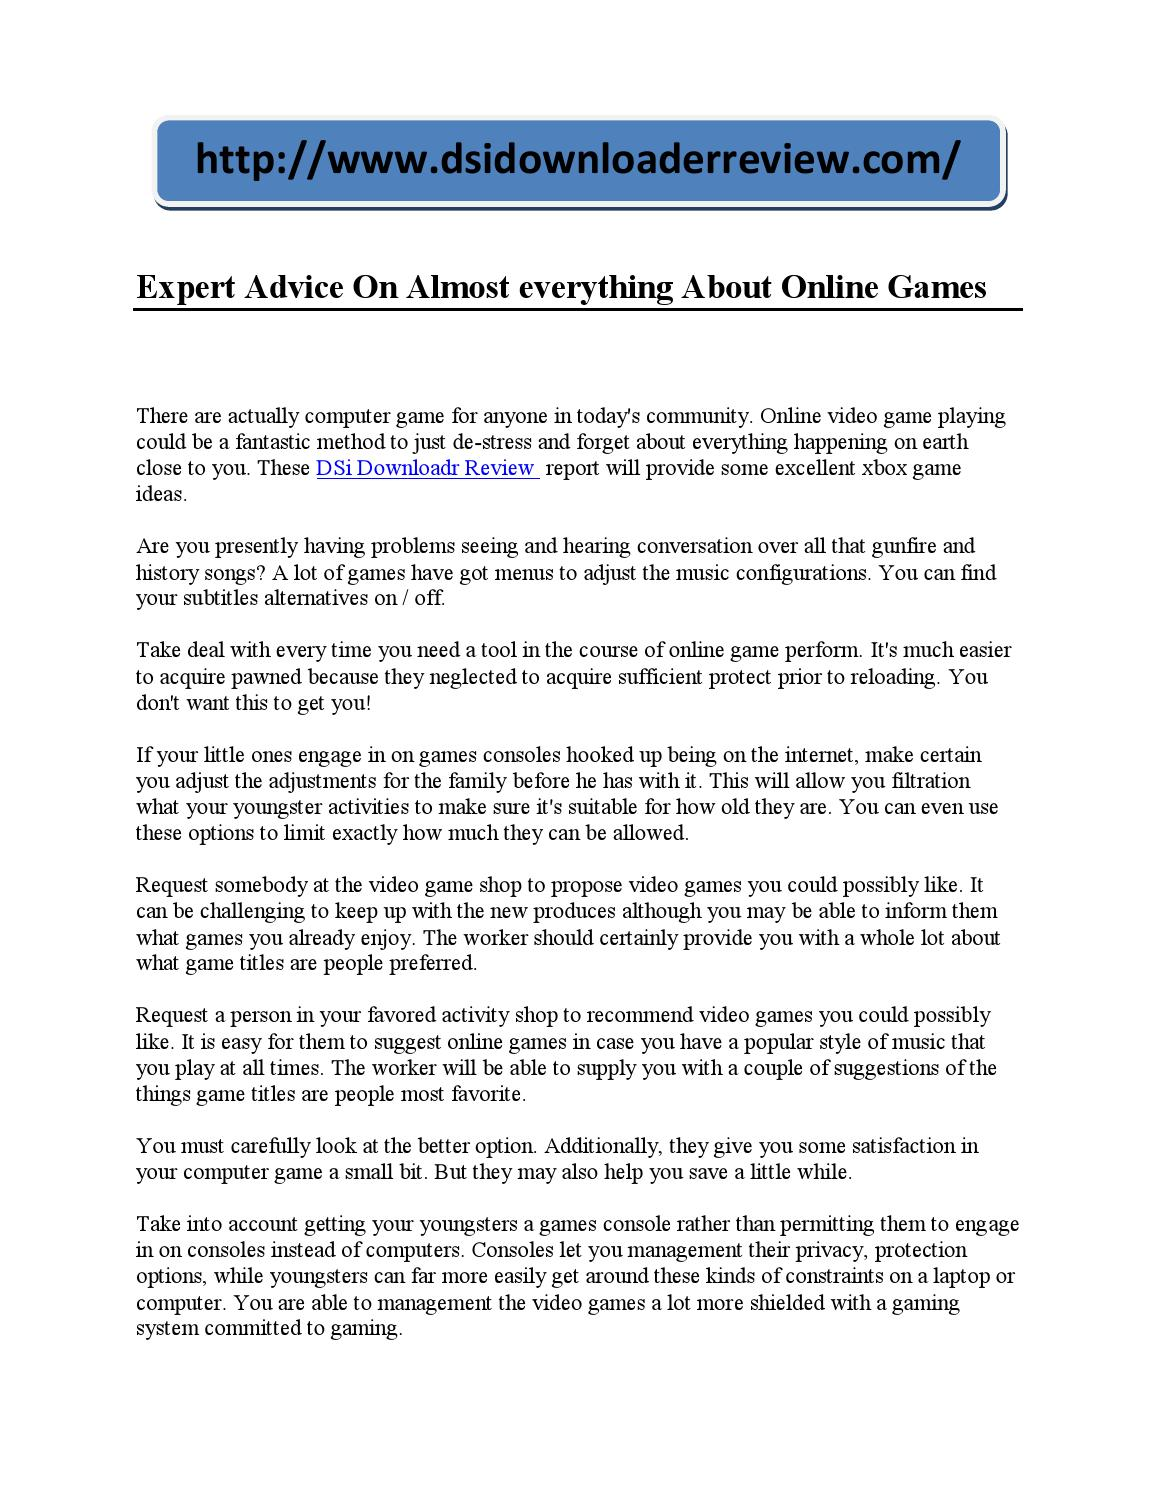 Expert advice on almost everything about online games by